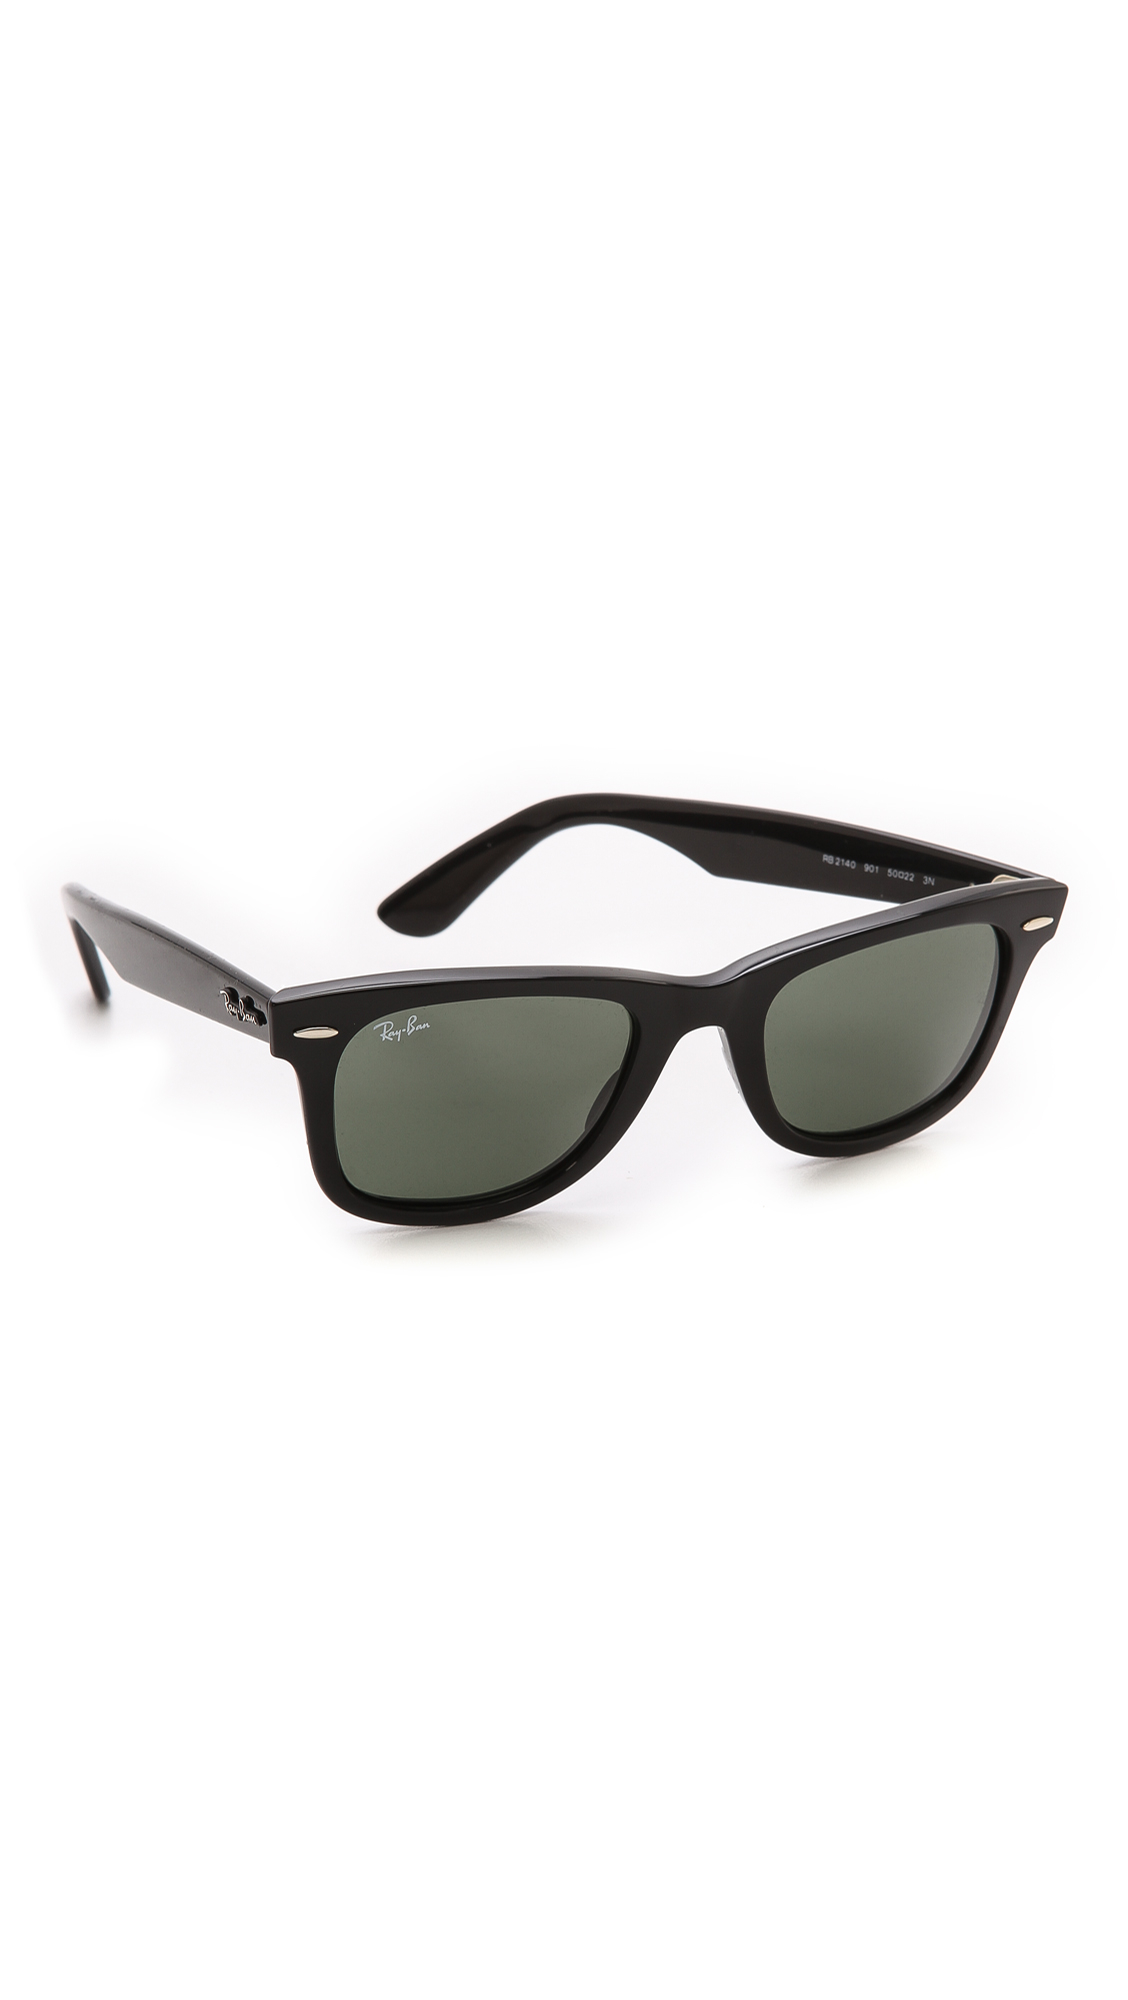 Ray-ban Original Wayfarer Sunglasses in Black for Men ...